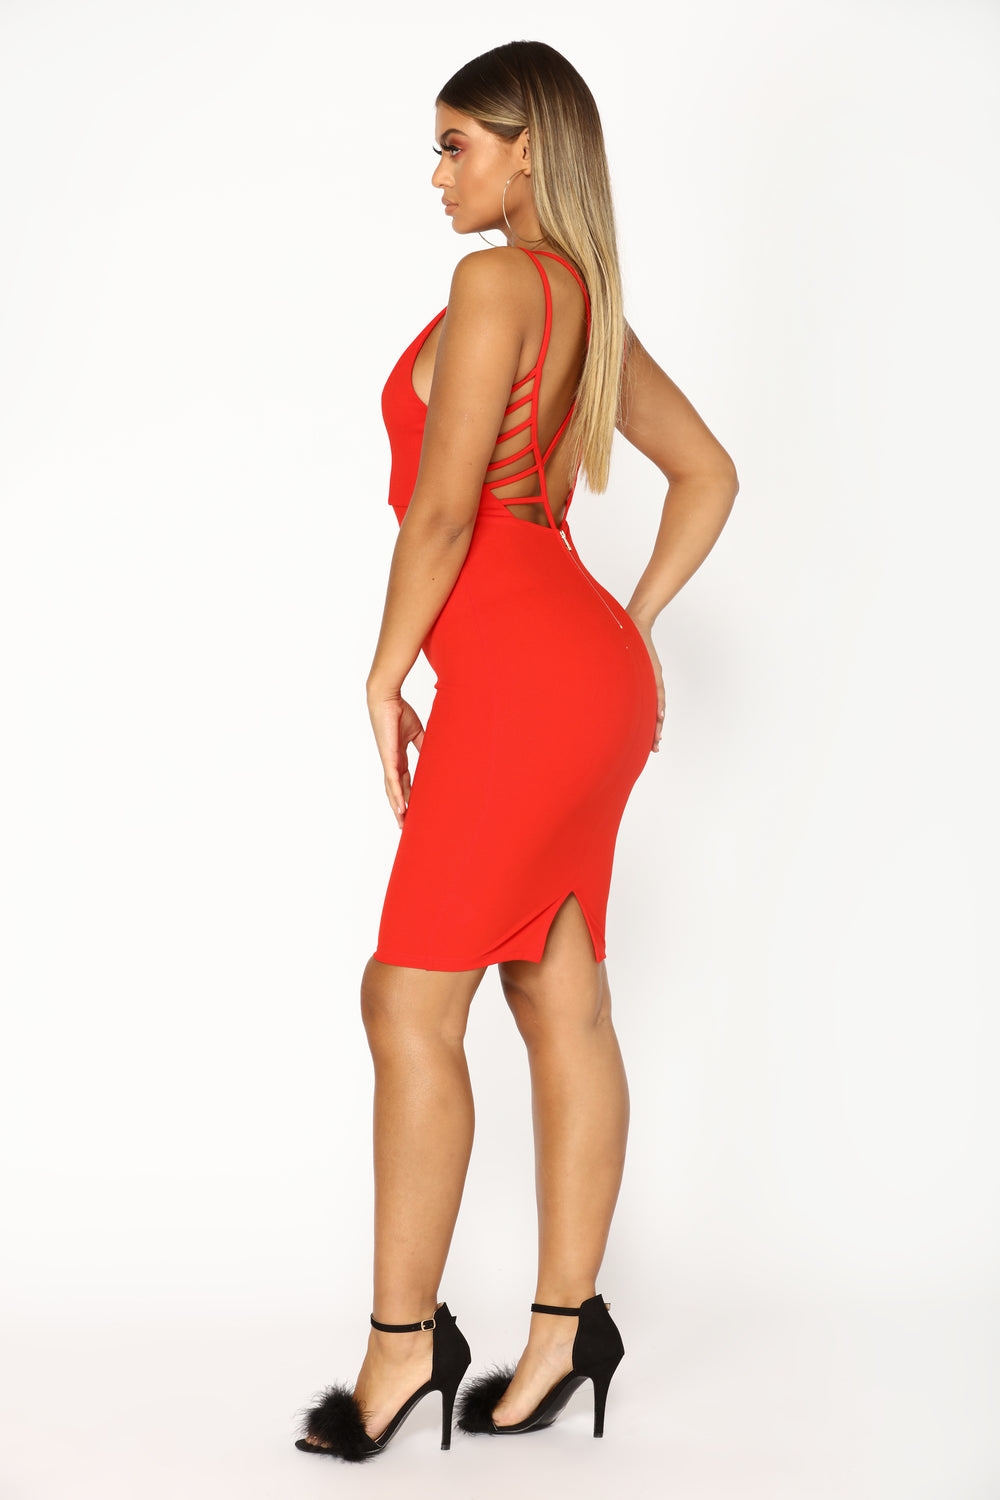 Lost In Your Light Midi Dress - Red